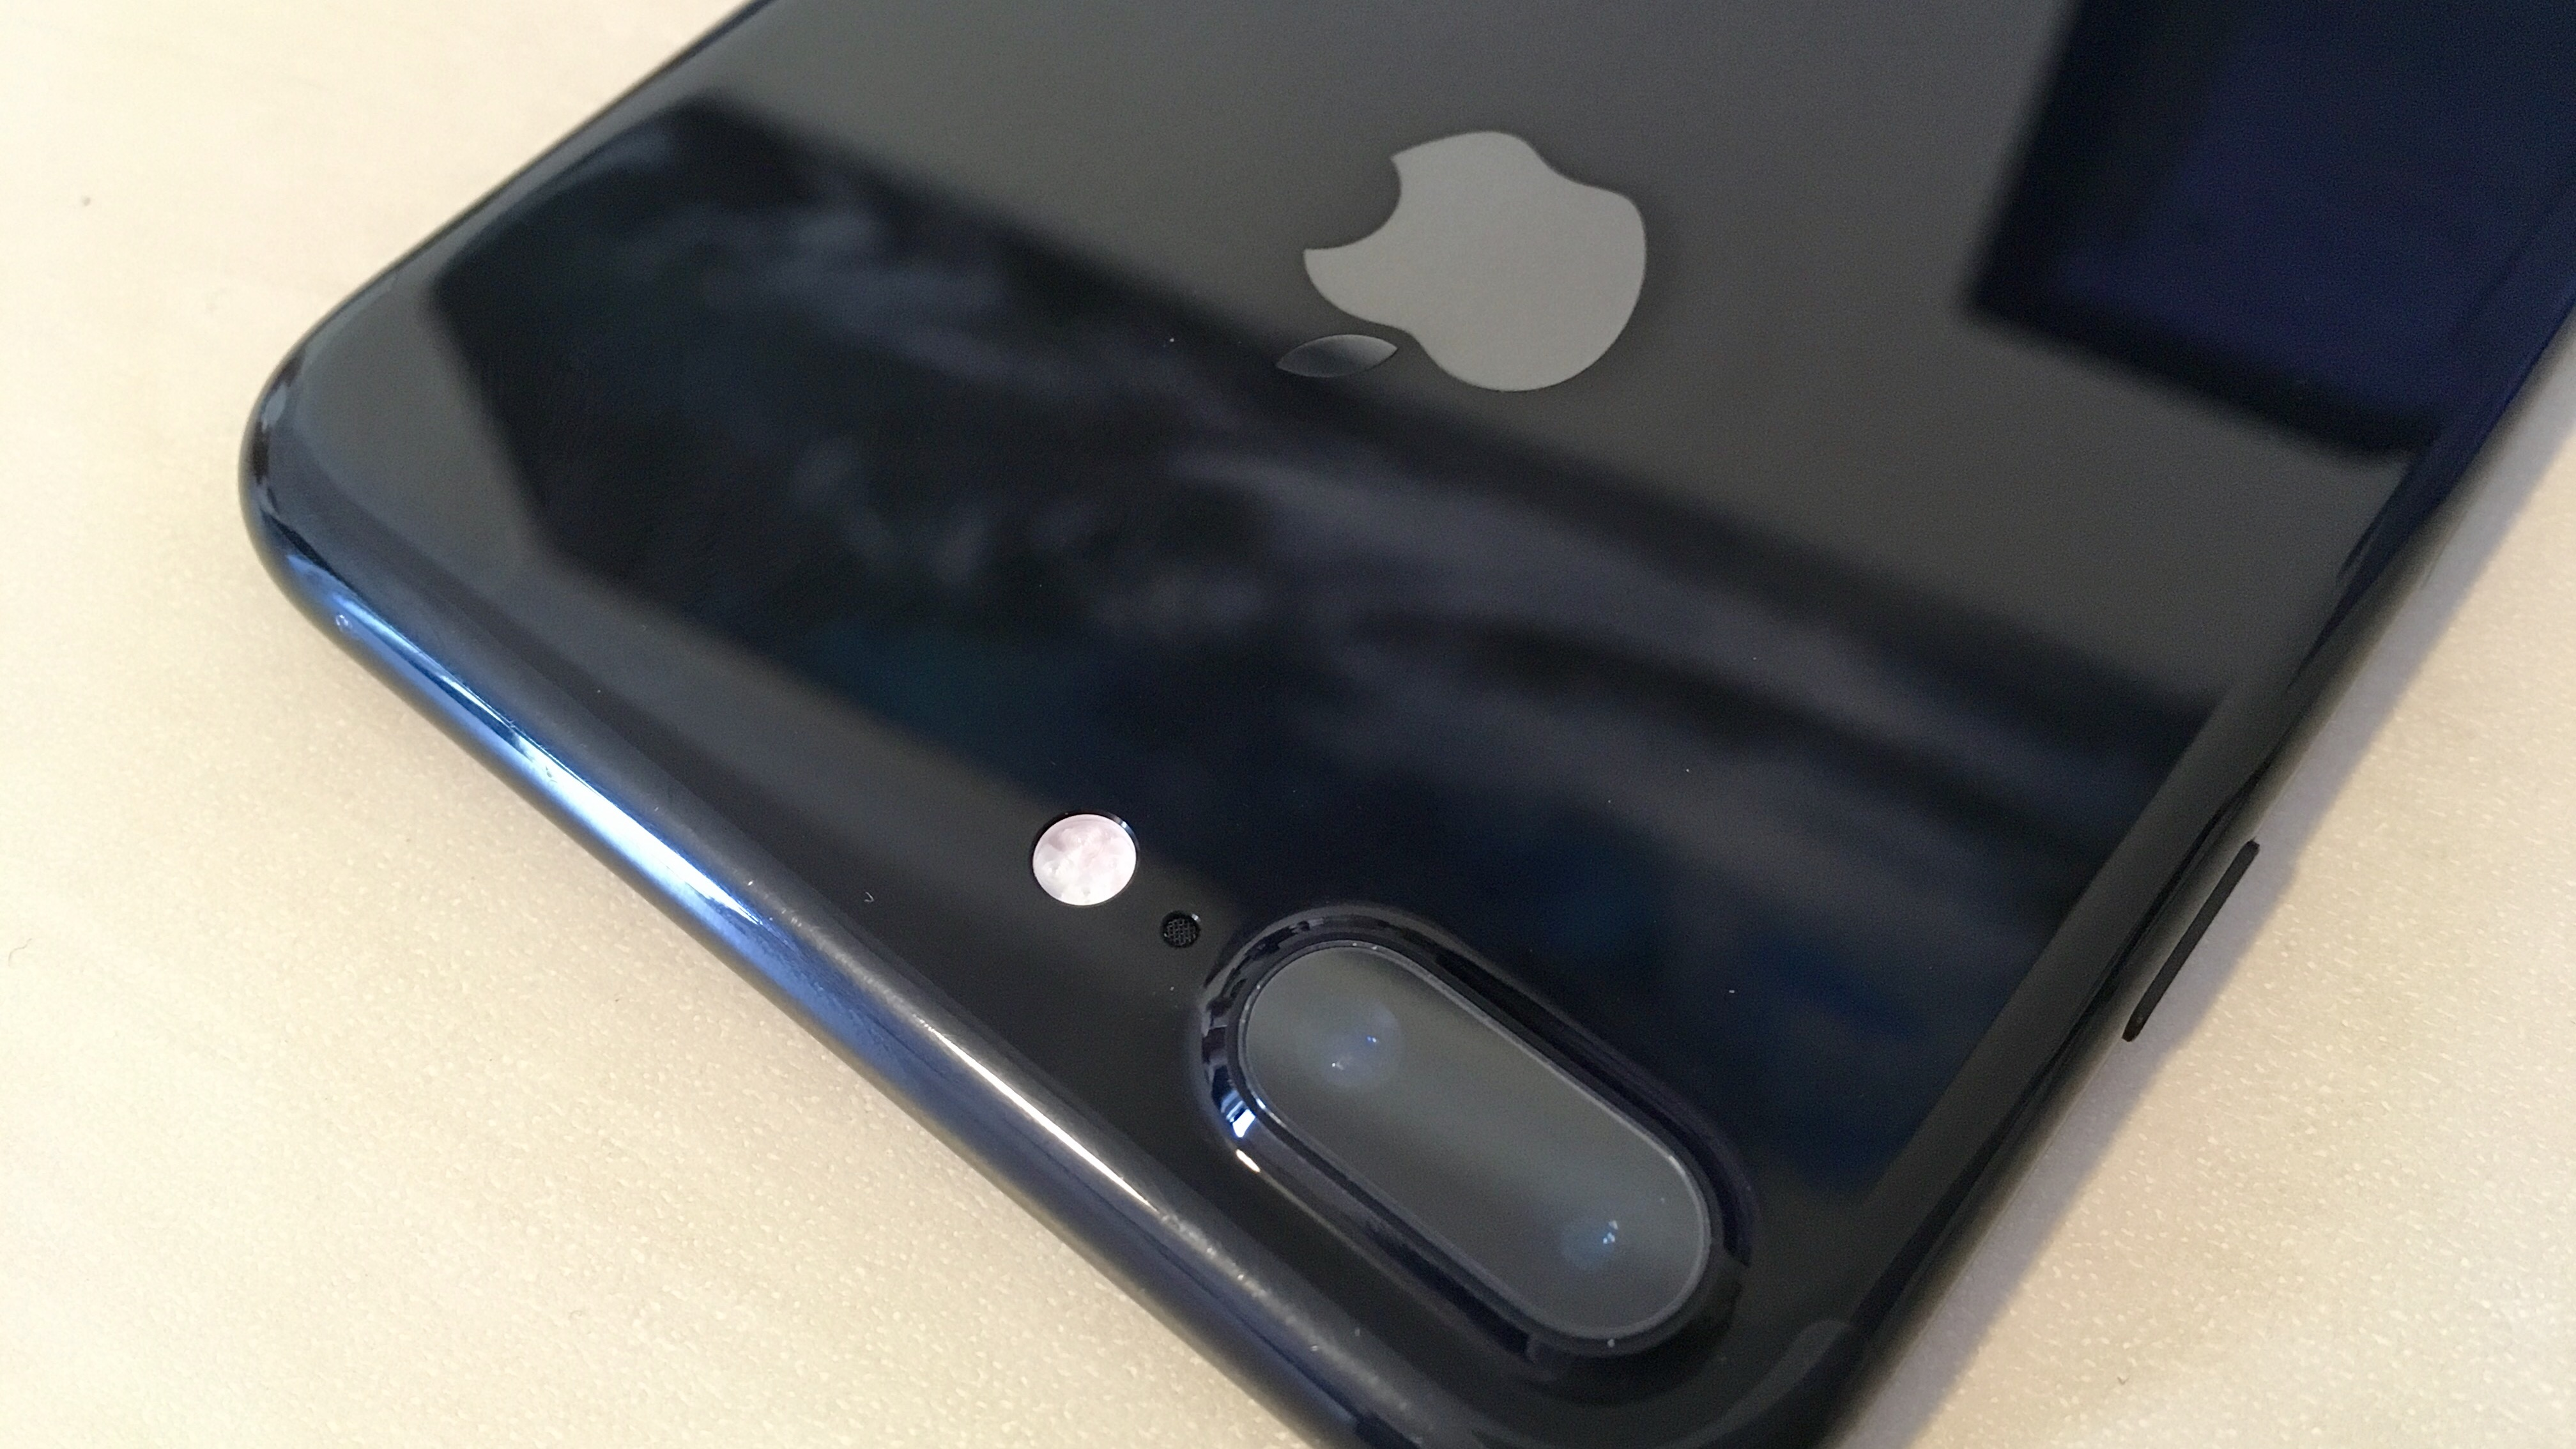 new concept 4623b d5b84 Here's how the jet black iPhone 7 finish holds up without a case ...